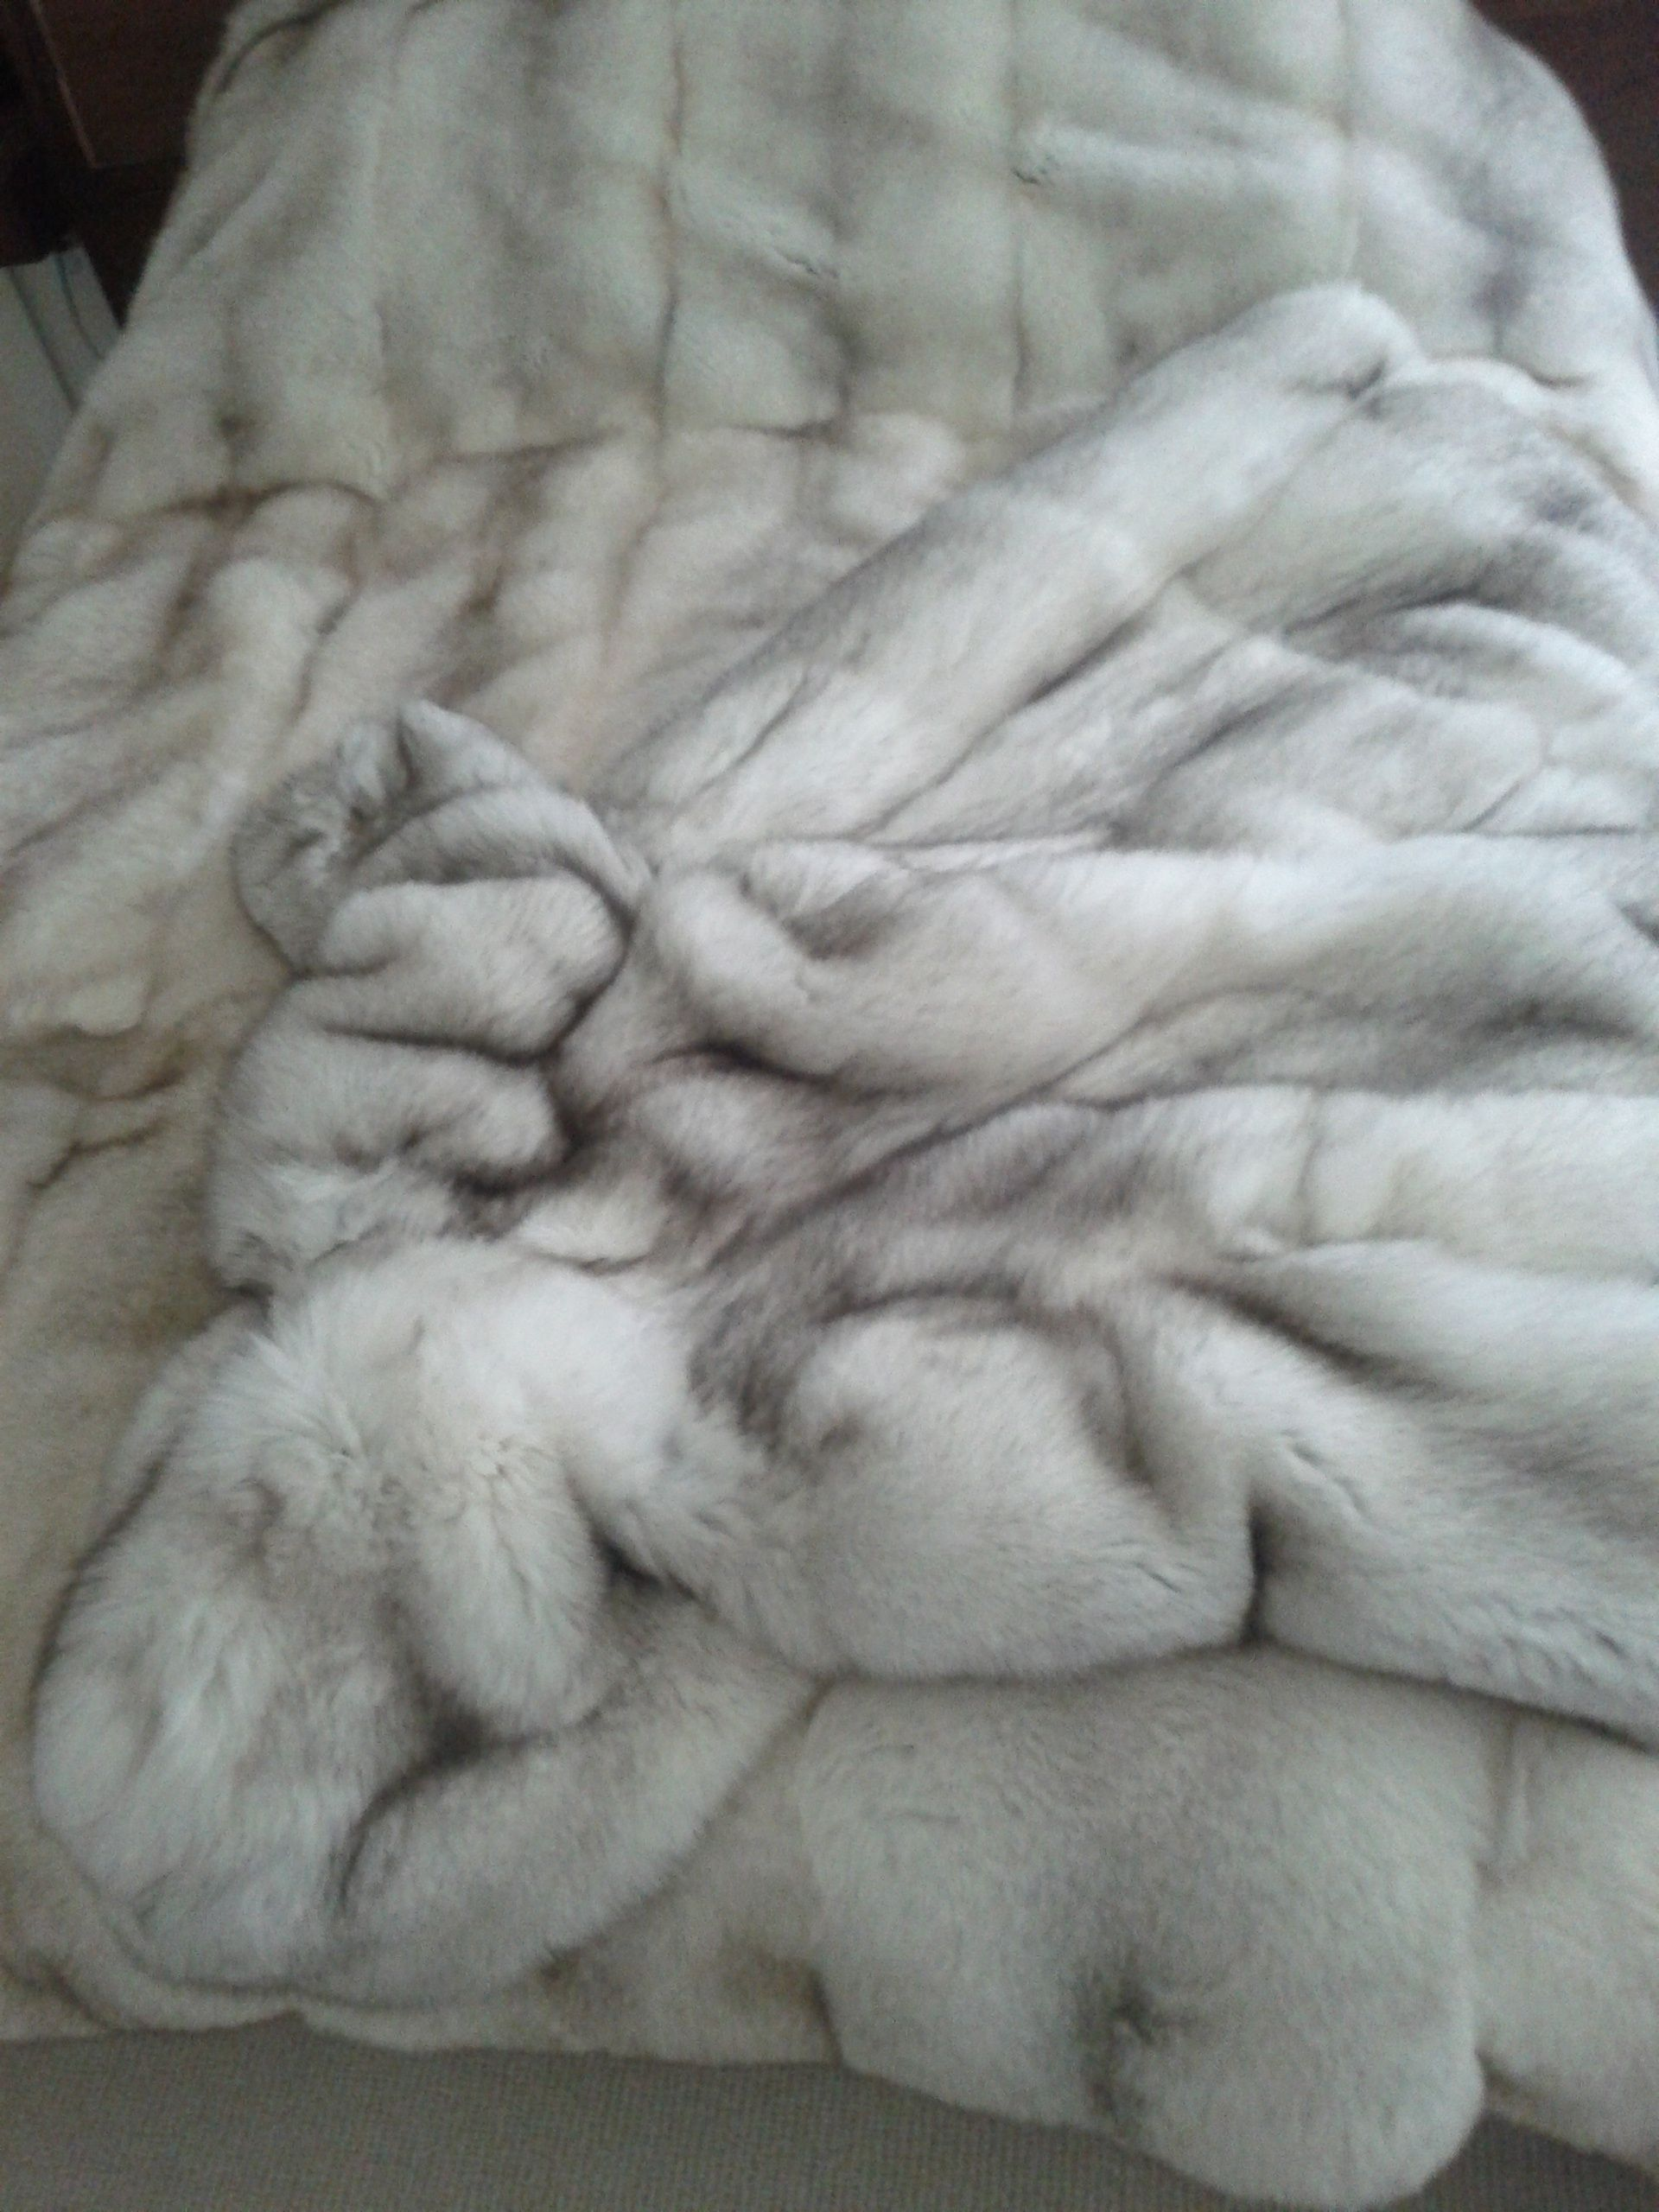 Arctic Fox Thick Dense And So Soft King Size Blanket On A Queen Size Bed Added Decadence Hooded Arctic Fox A Fur Blanket Fur Bedding Fur Throw Blanket